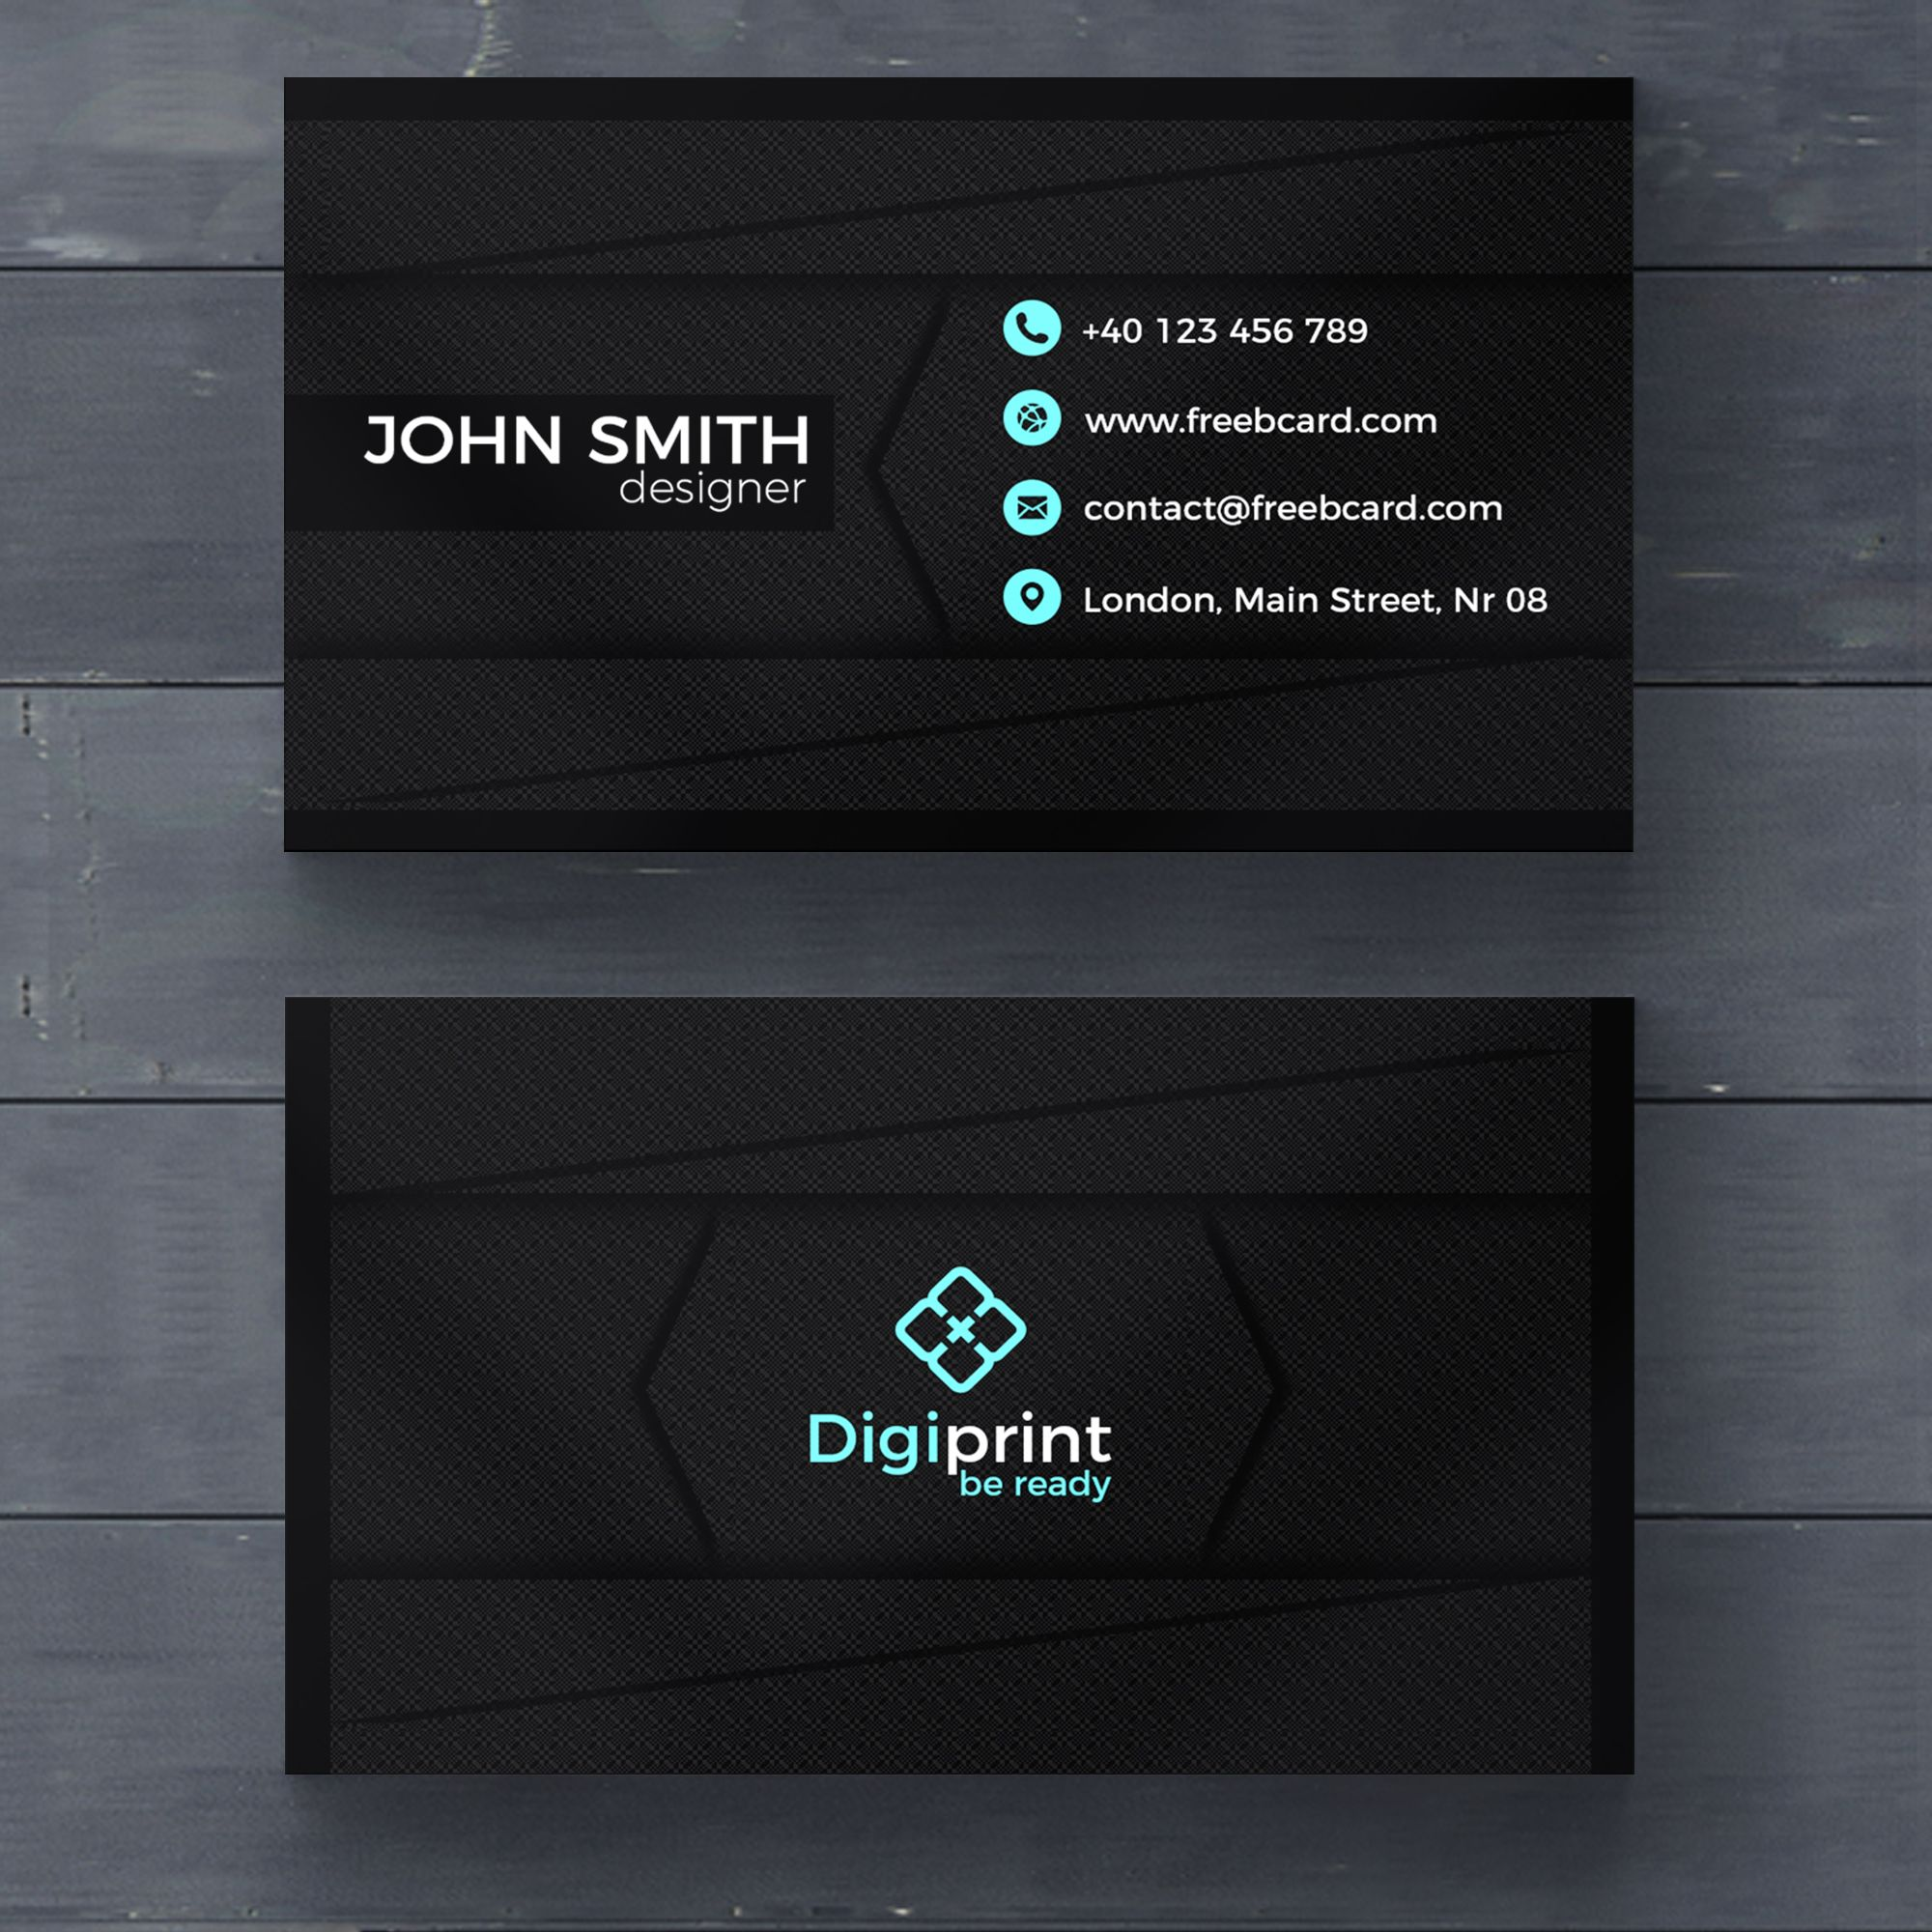 Pin by seka seka on name cards pinterest internet how to setup a business card in adobe photoshop reheart Images